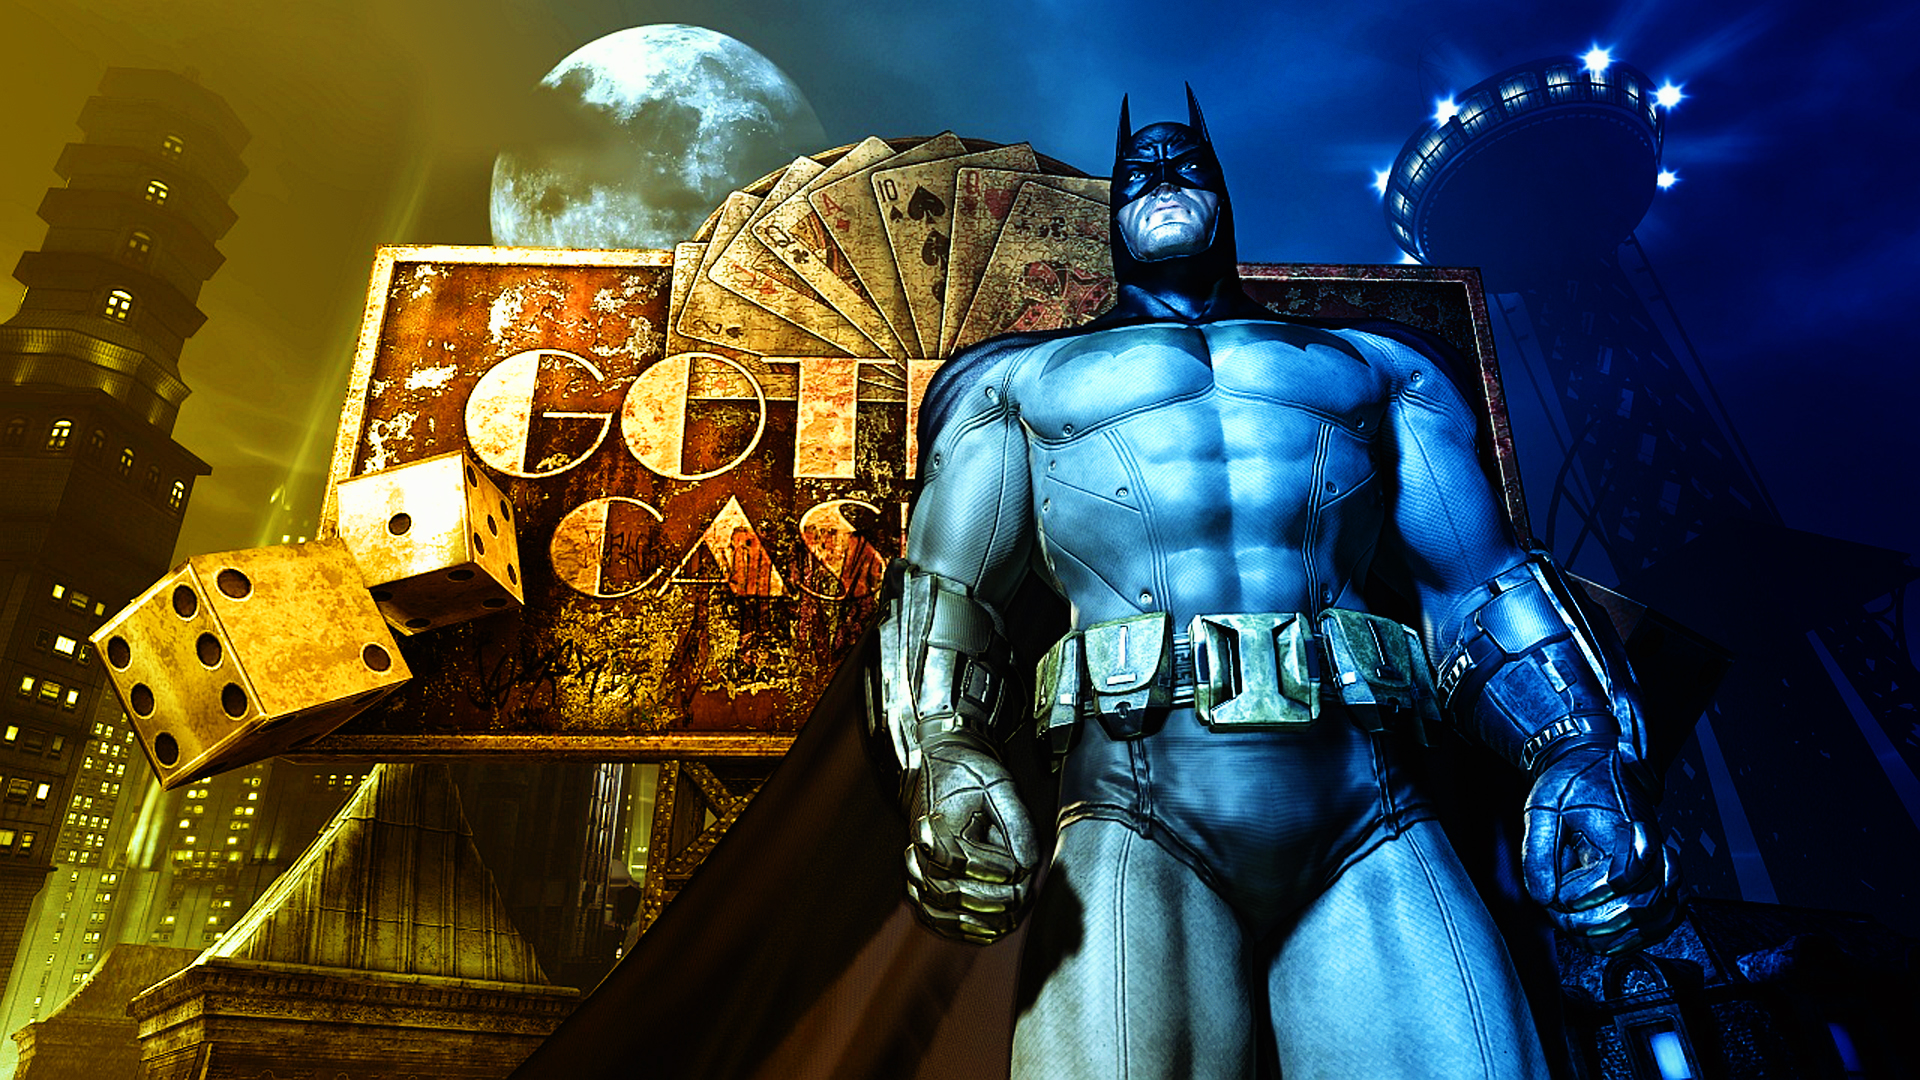 Hd Wallpapers Pack For Windows 10 High Resolution Wallpapers Pictures Batman Arkham City